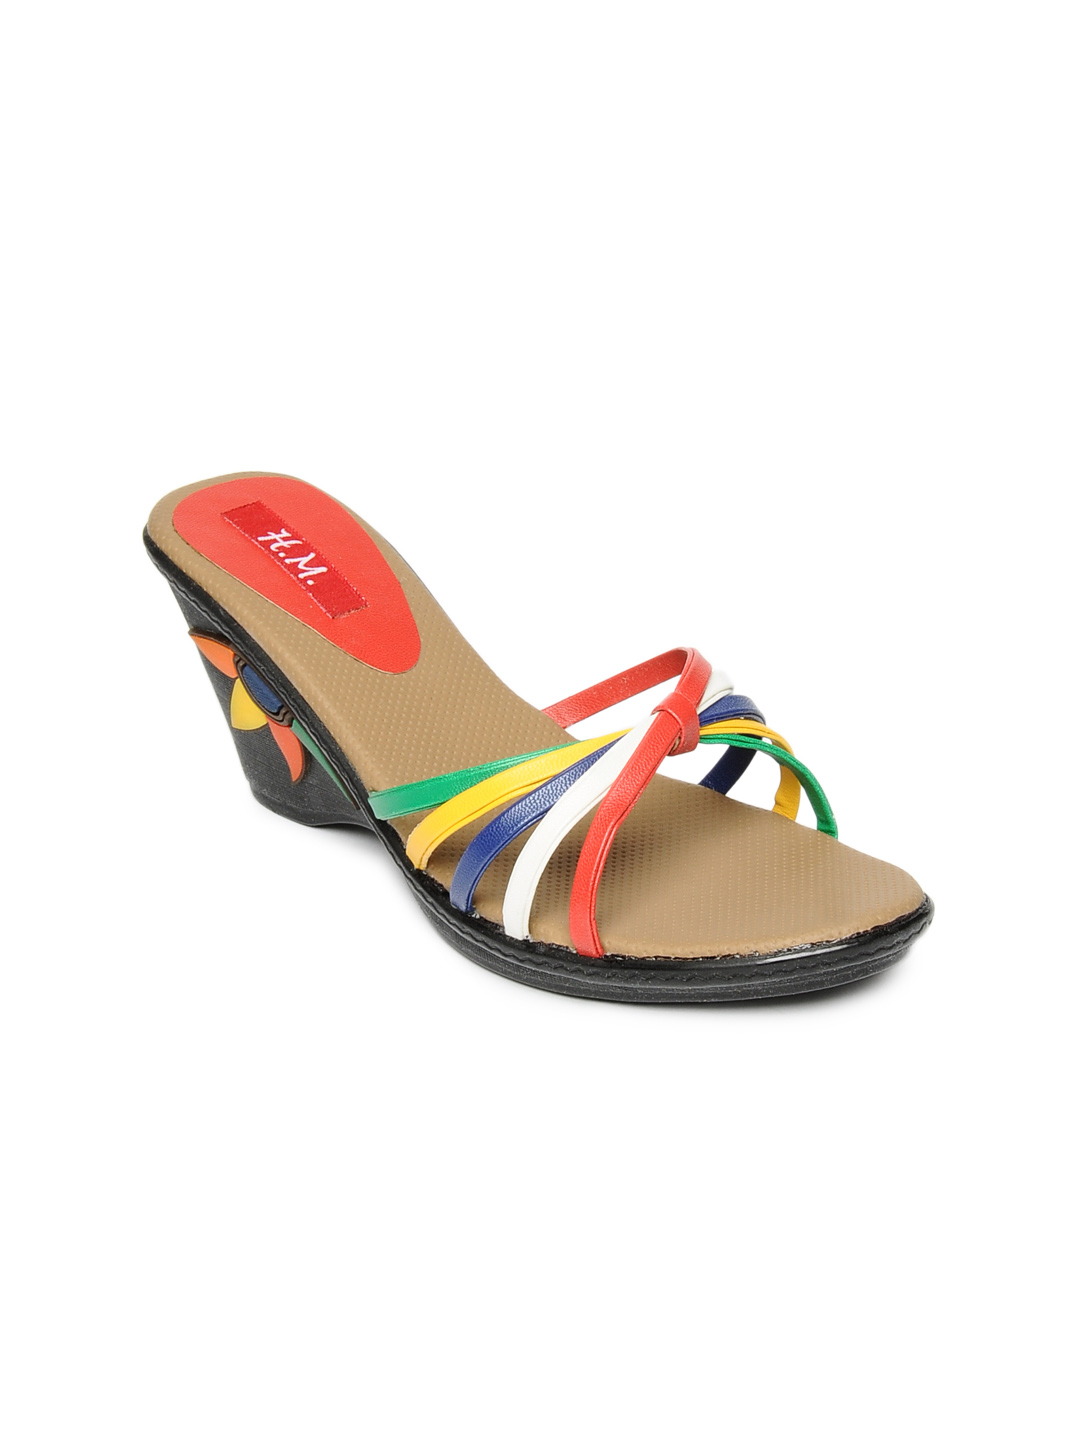 HM Women Multi Coloured Sandals